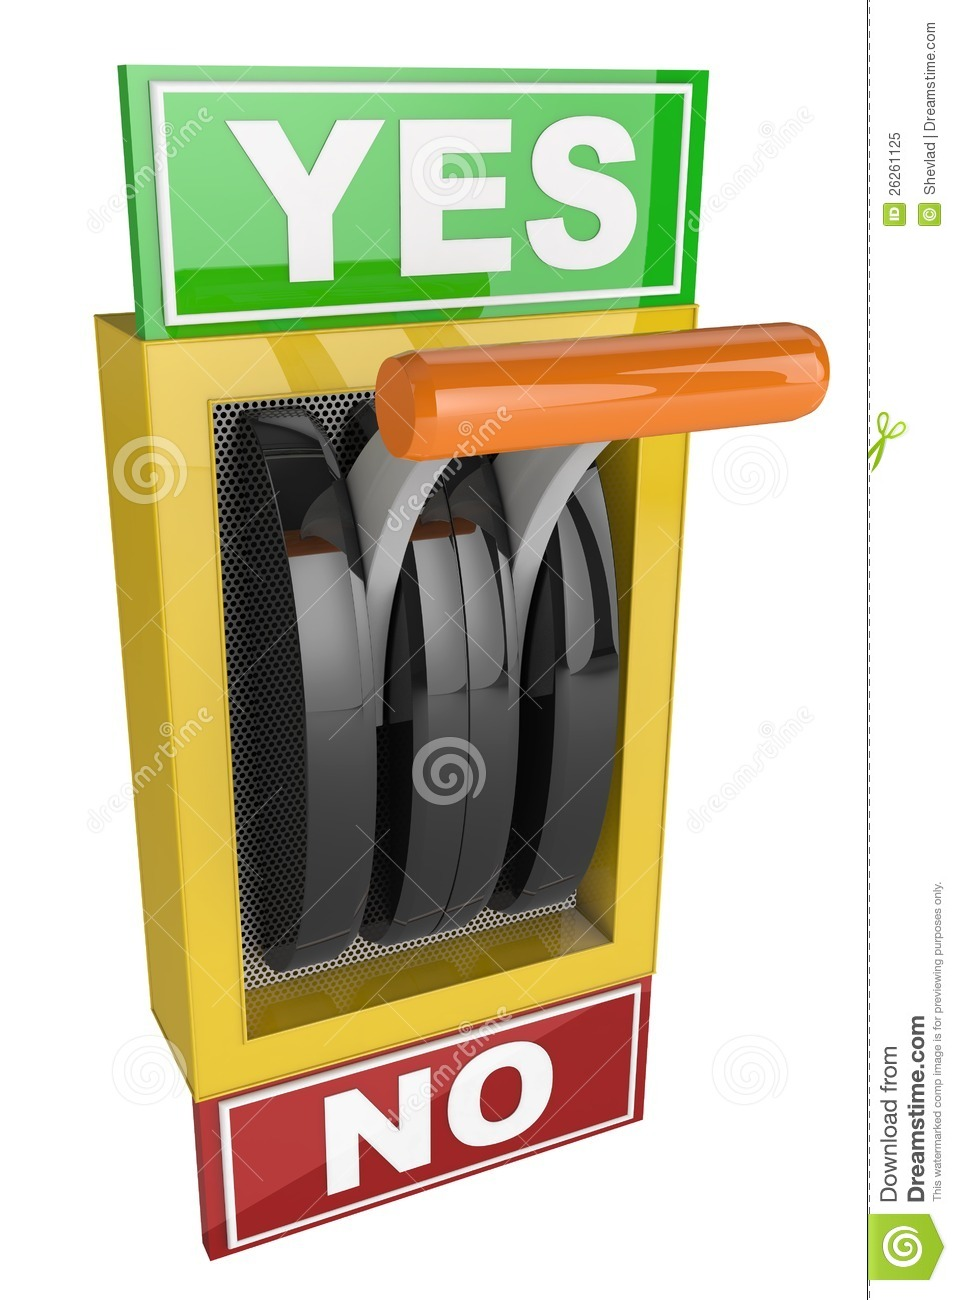 Yes No Goddess Tarot: Switch Lever Yes And No Royalty Free Stock Photo